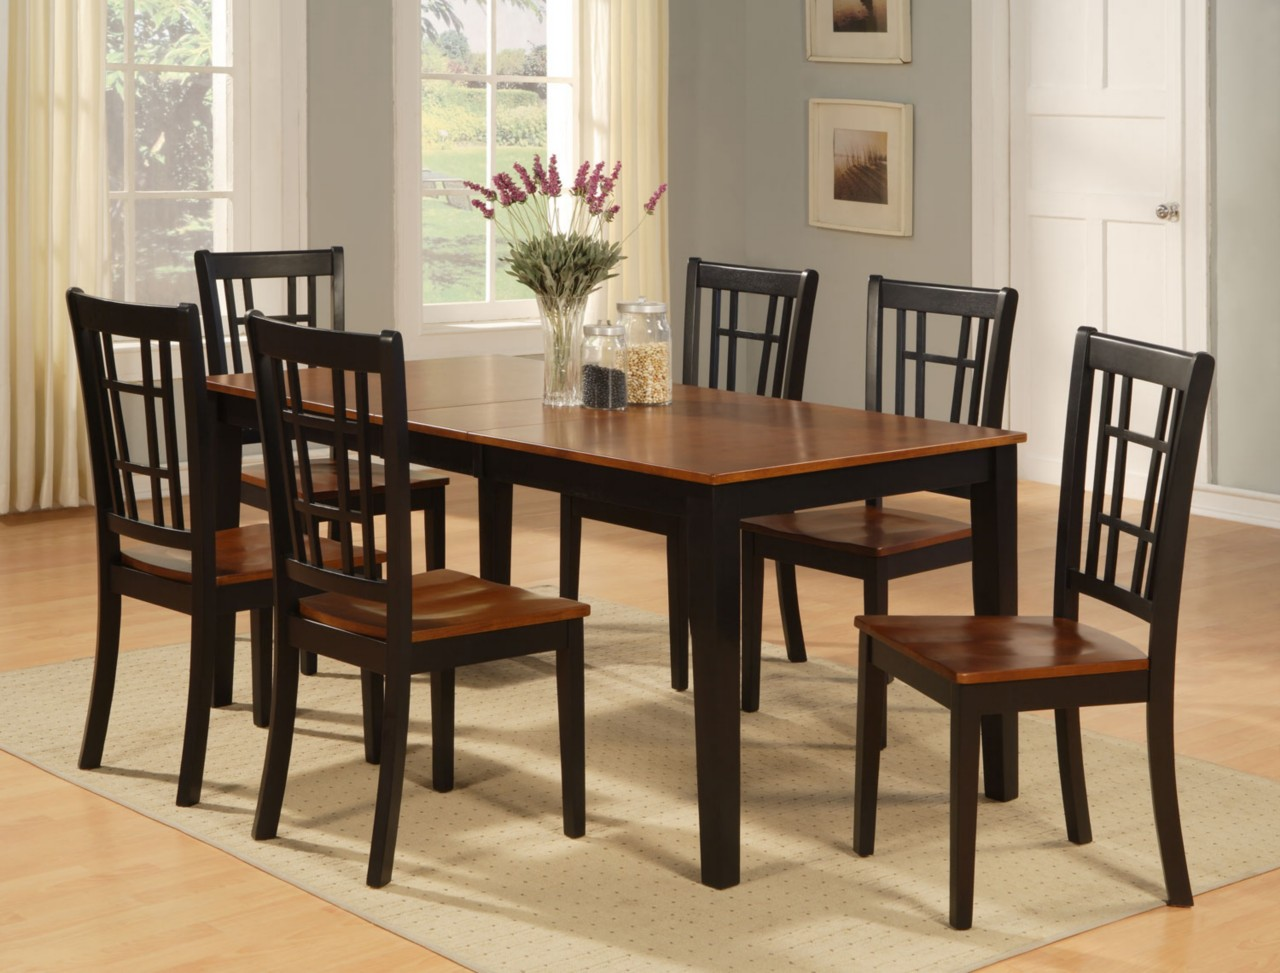 Dinette kitchen dining room set 7pc table and 6 chairs ebay Kitchen table and chairs